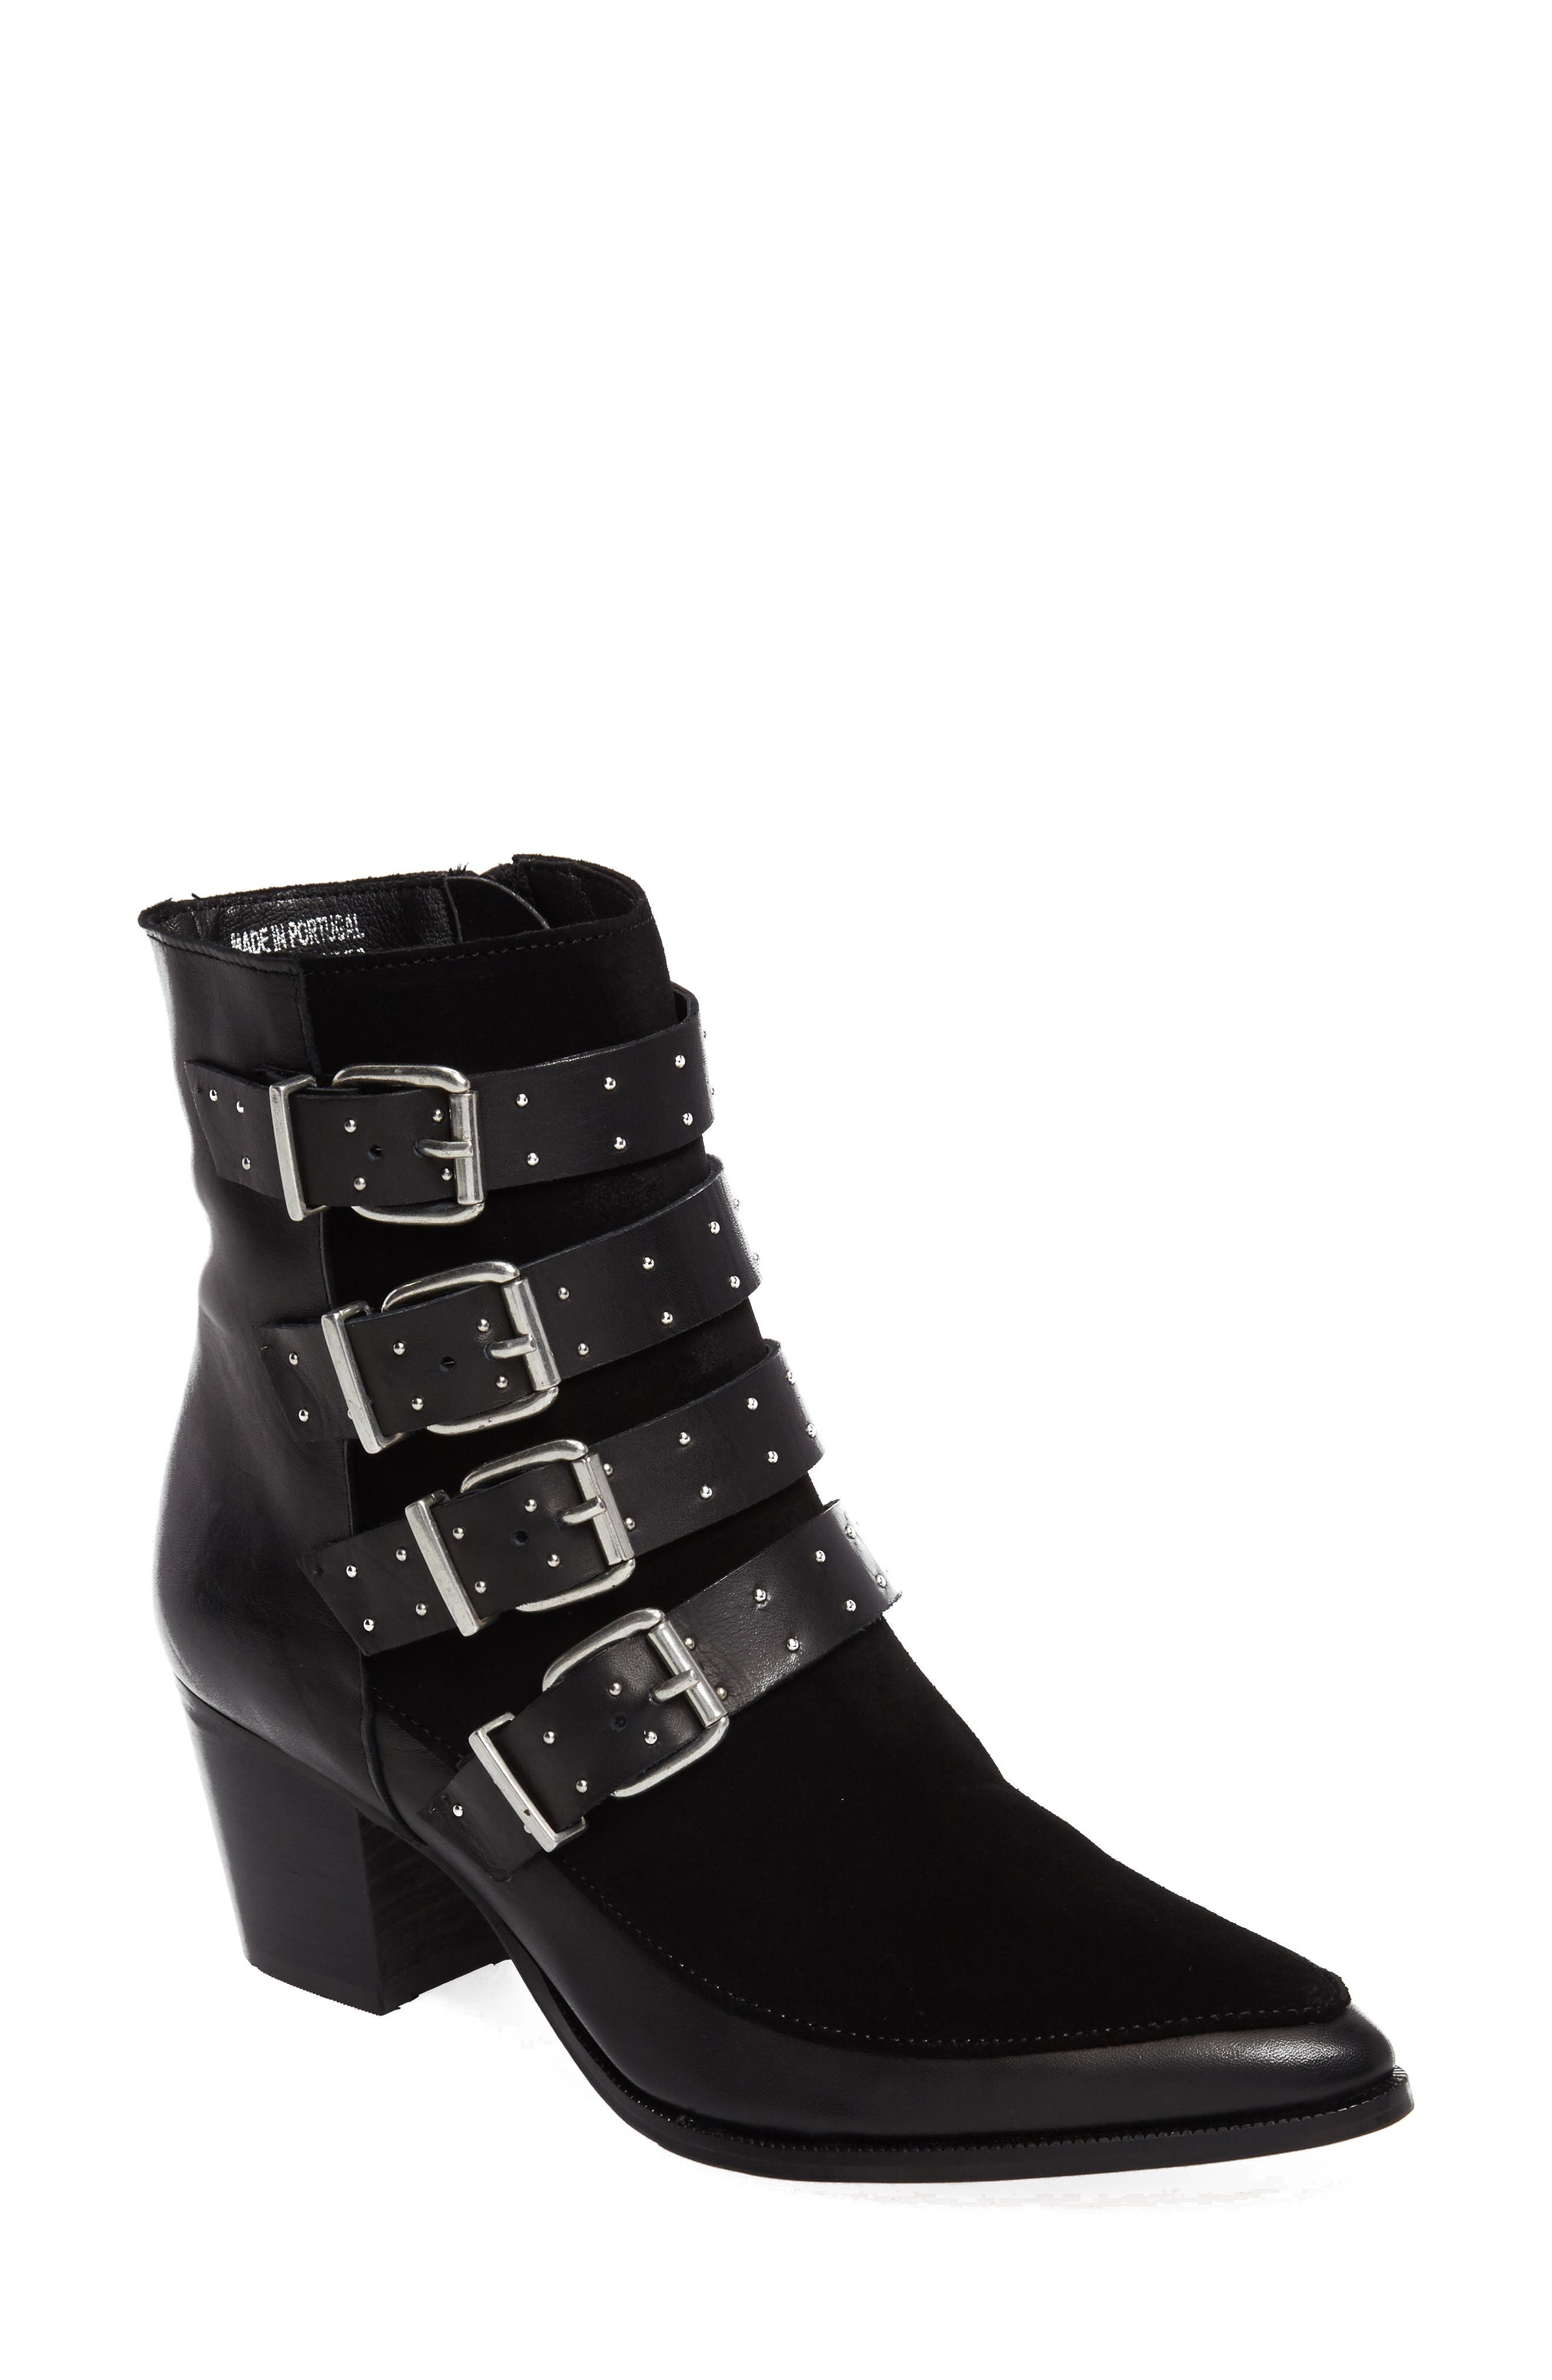 Merlin Buckle Bootie,                             Main thumbnail 1, color,                             001